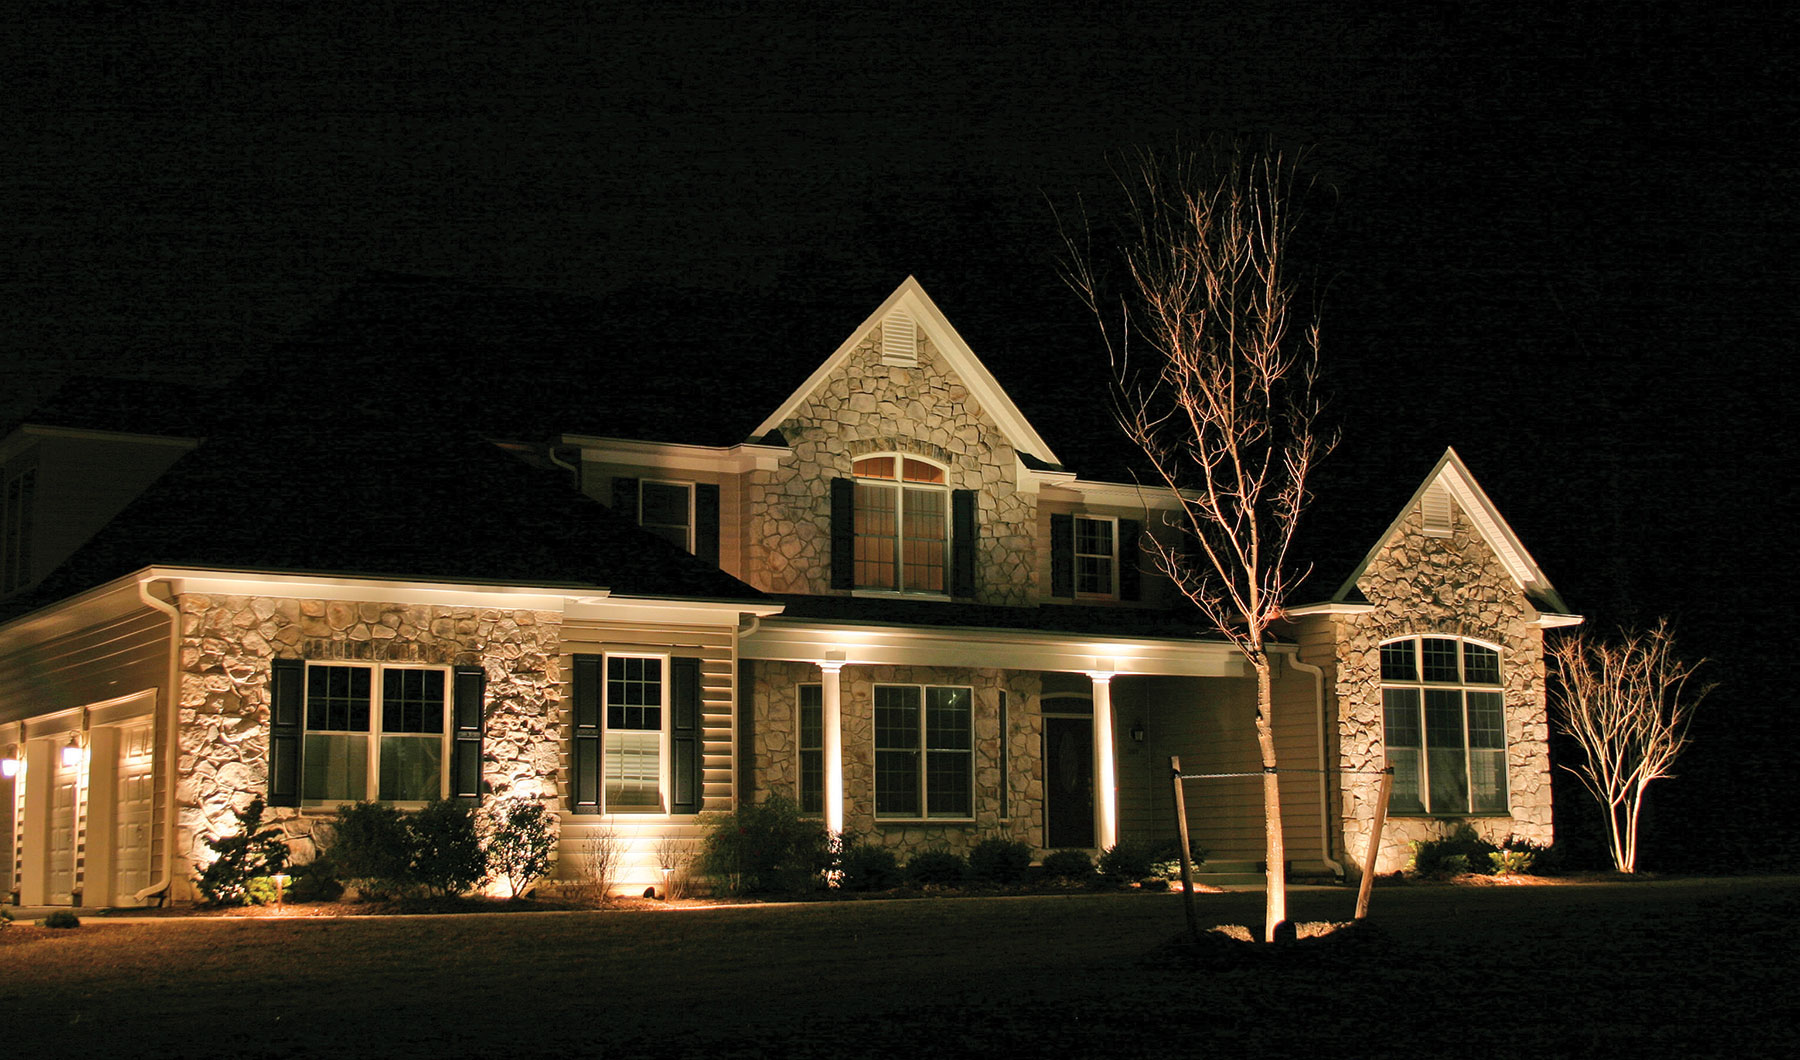 Curb Appeal - Residential & Commercial Outdoor Lighting on ranch house dining room, railroad station outdoor lighting, police station outdoor lighting, apartment complex outdoor lighting, ranch house fireplaces, church outdoor lighting, farm outdoor lighting, ranch house ceiling, cowboy outdoor lighting, ranch house fencing, ranch house walkways, ranch house floor, ranch house plumbing, ranch house weddings, home outdoor lighting, ranch house light fixtures, log cabin outdoor lighting, cottage outdoor lighting, ranch house furniture, ranch house doors,